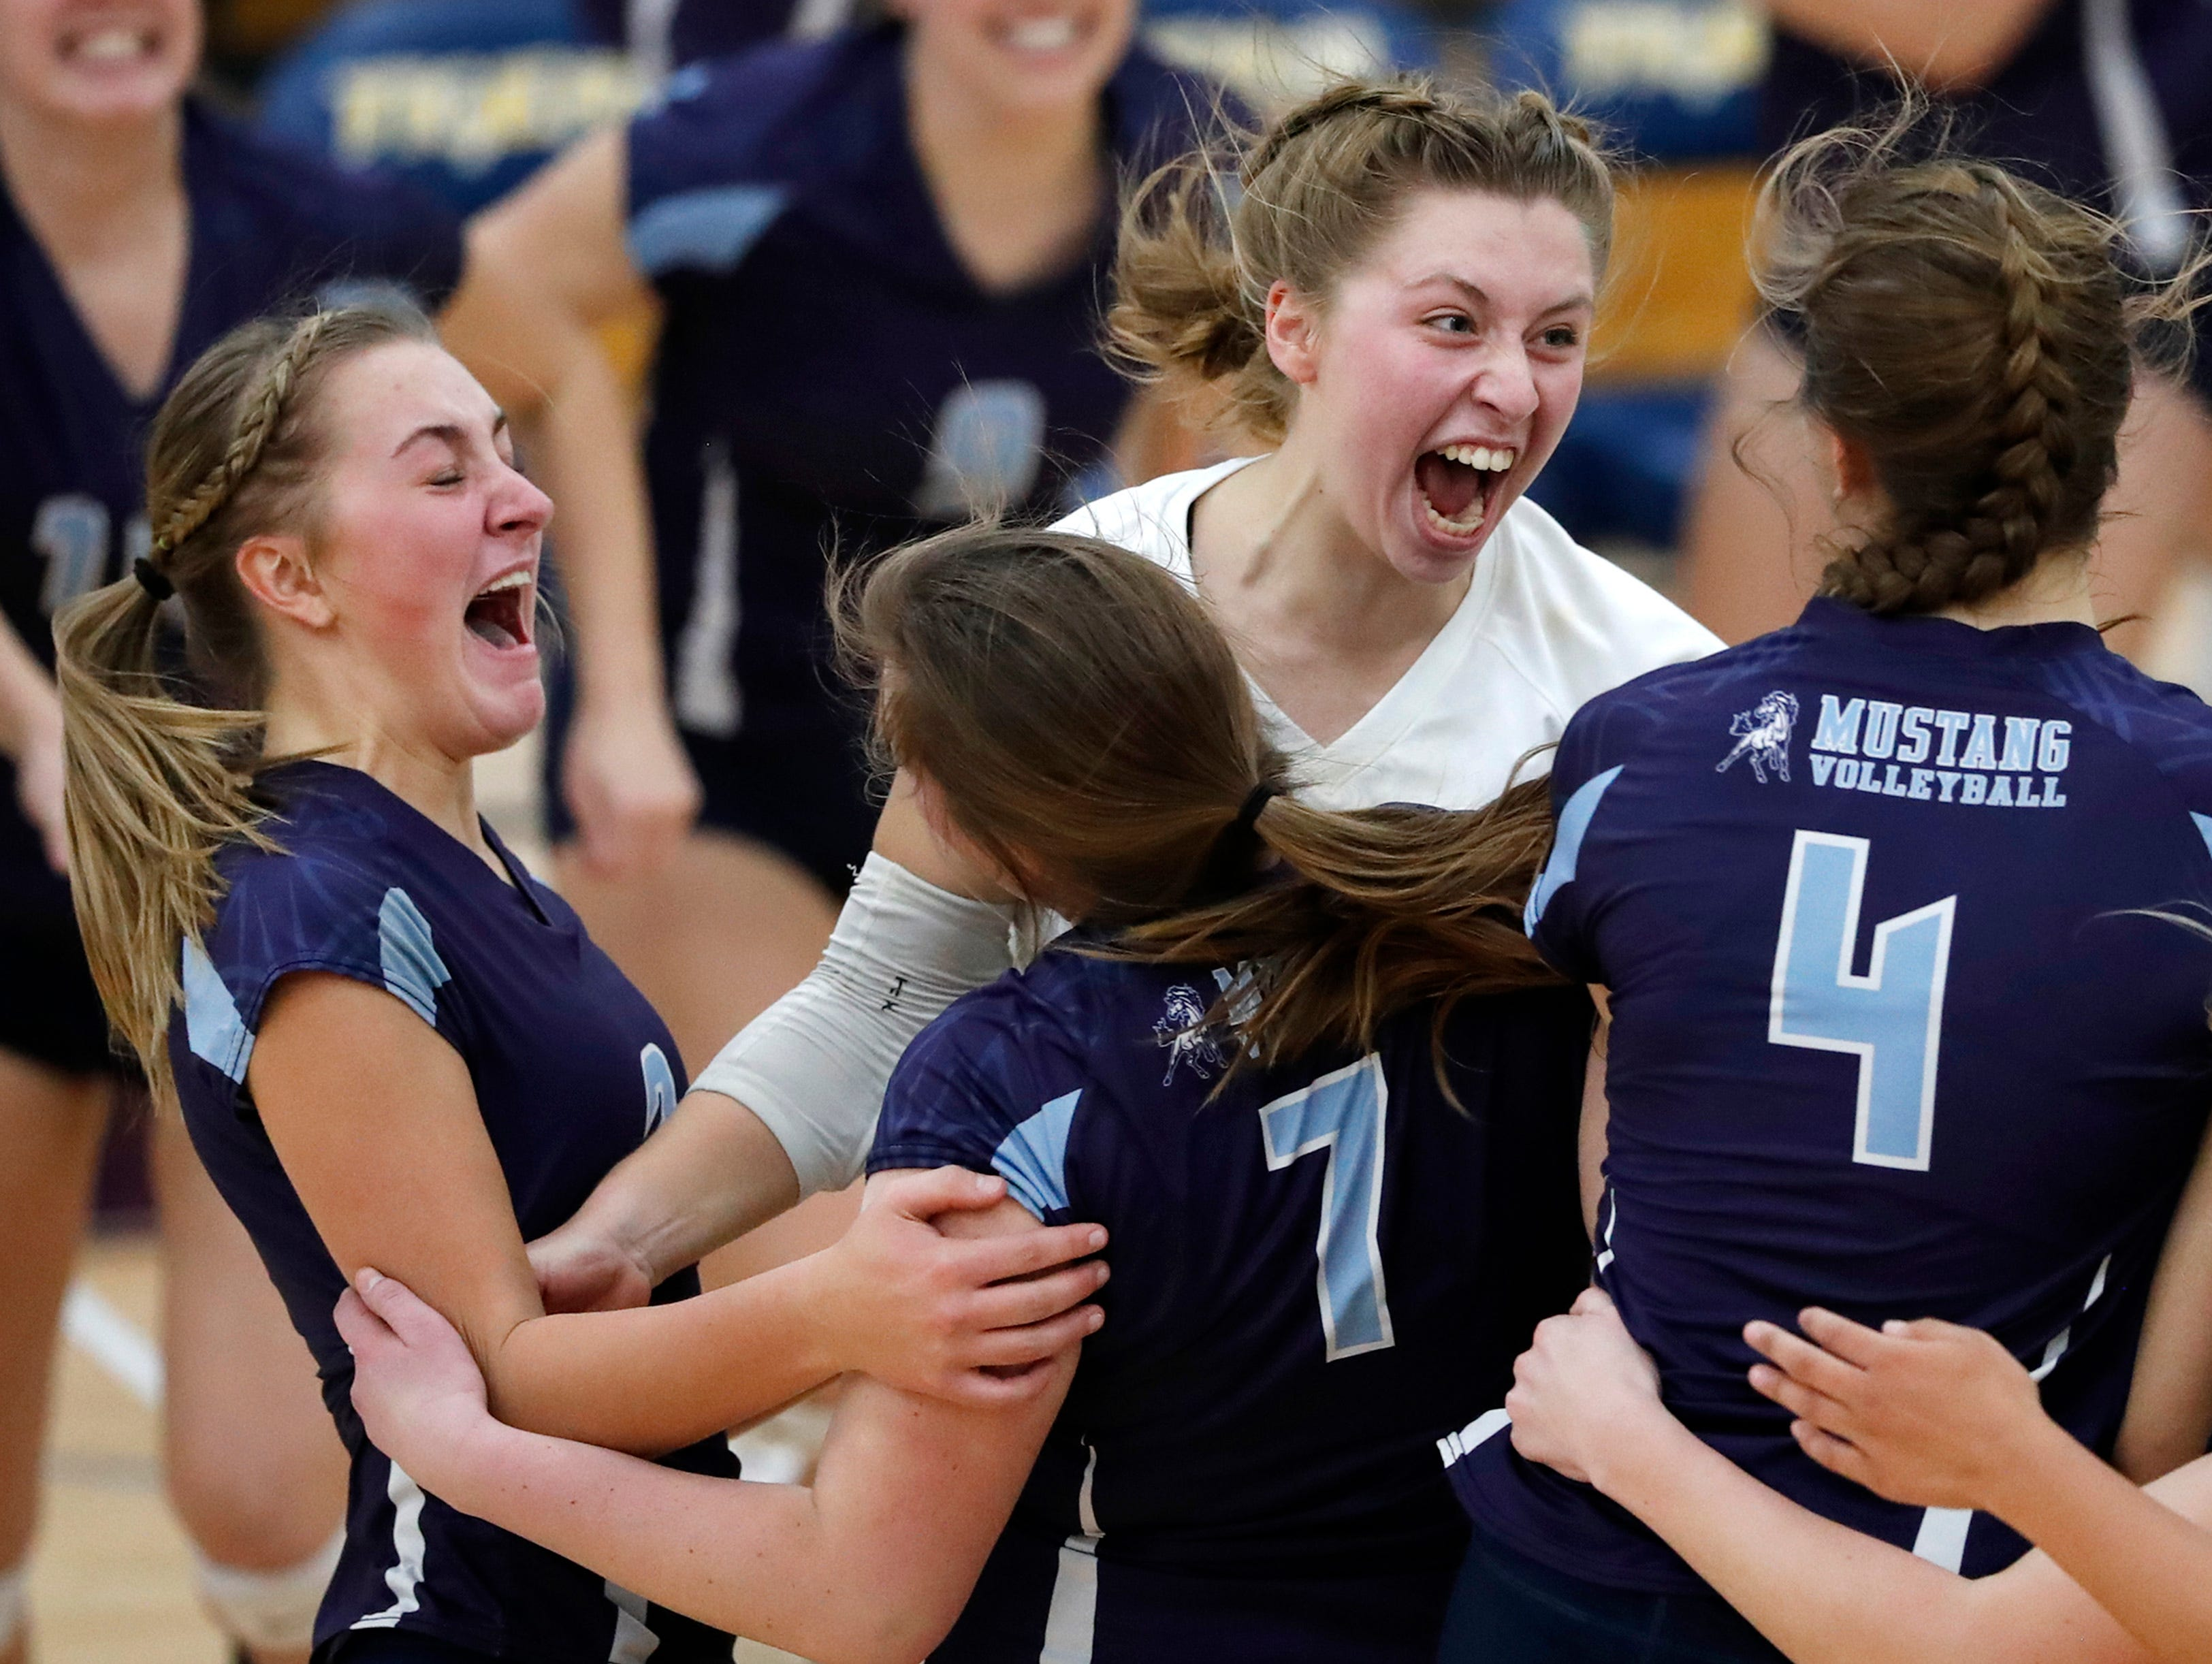 Little Chute High School's Gabi Roemer, Katherine Joten, Emma Ciske, and Hannah VandenBerg celebrate after defeating Xavier High School in the fifth set during their Division 2 semifinal match Thursday, Oct. 25, 2018, in Chilton, Wis.Danny Damiani/USA TODAY NETWORK-Wisconsin